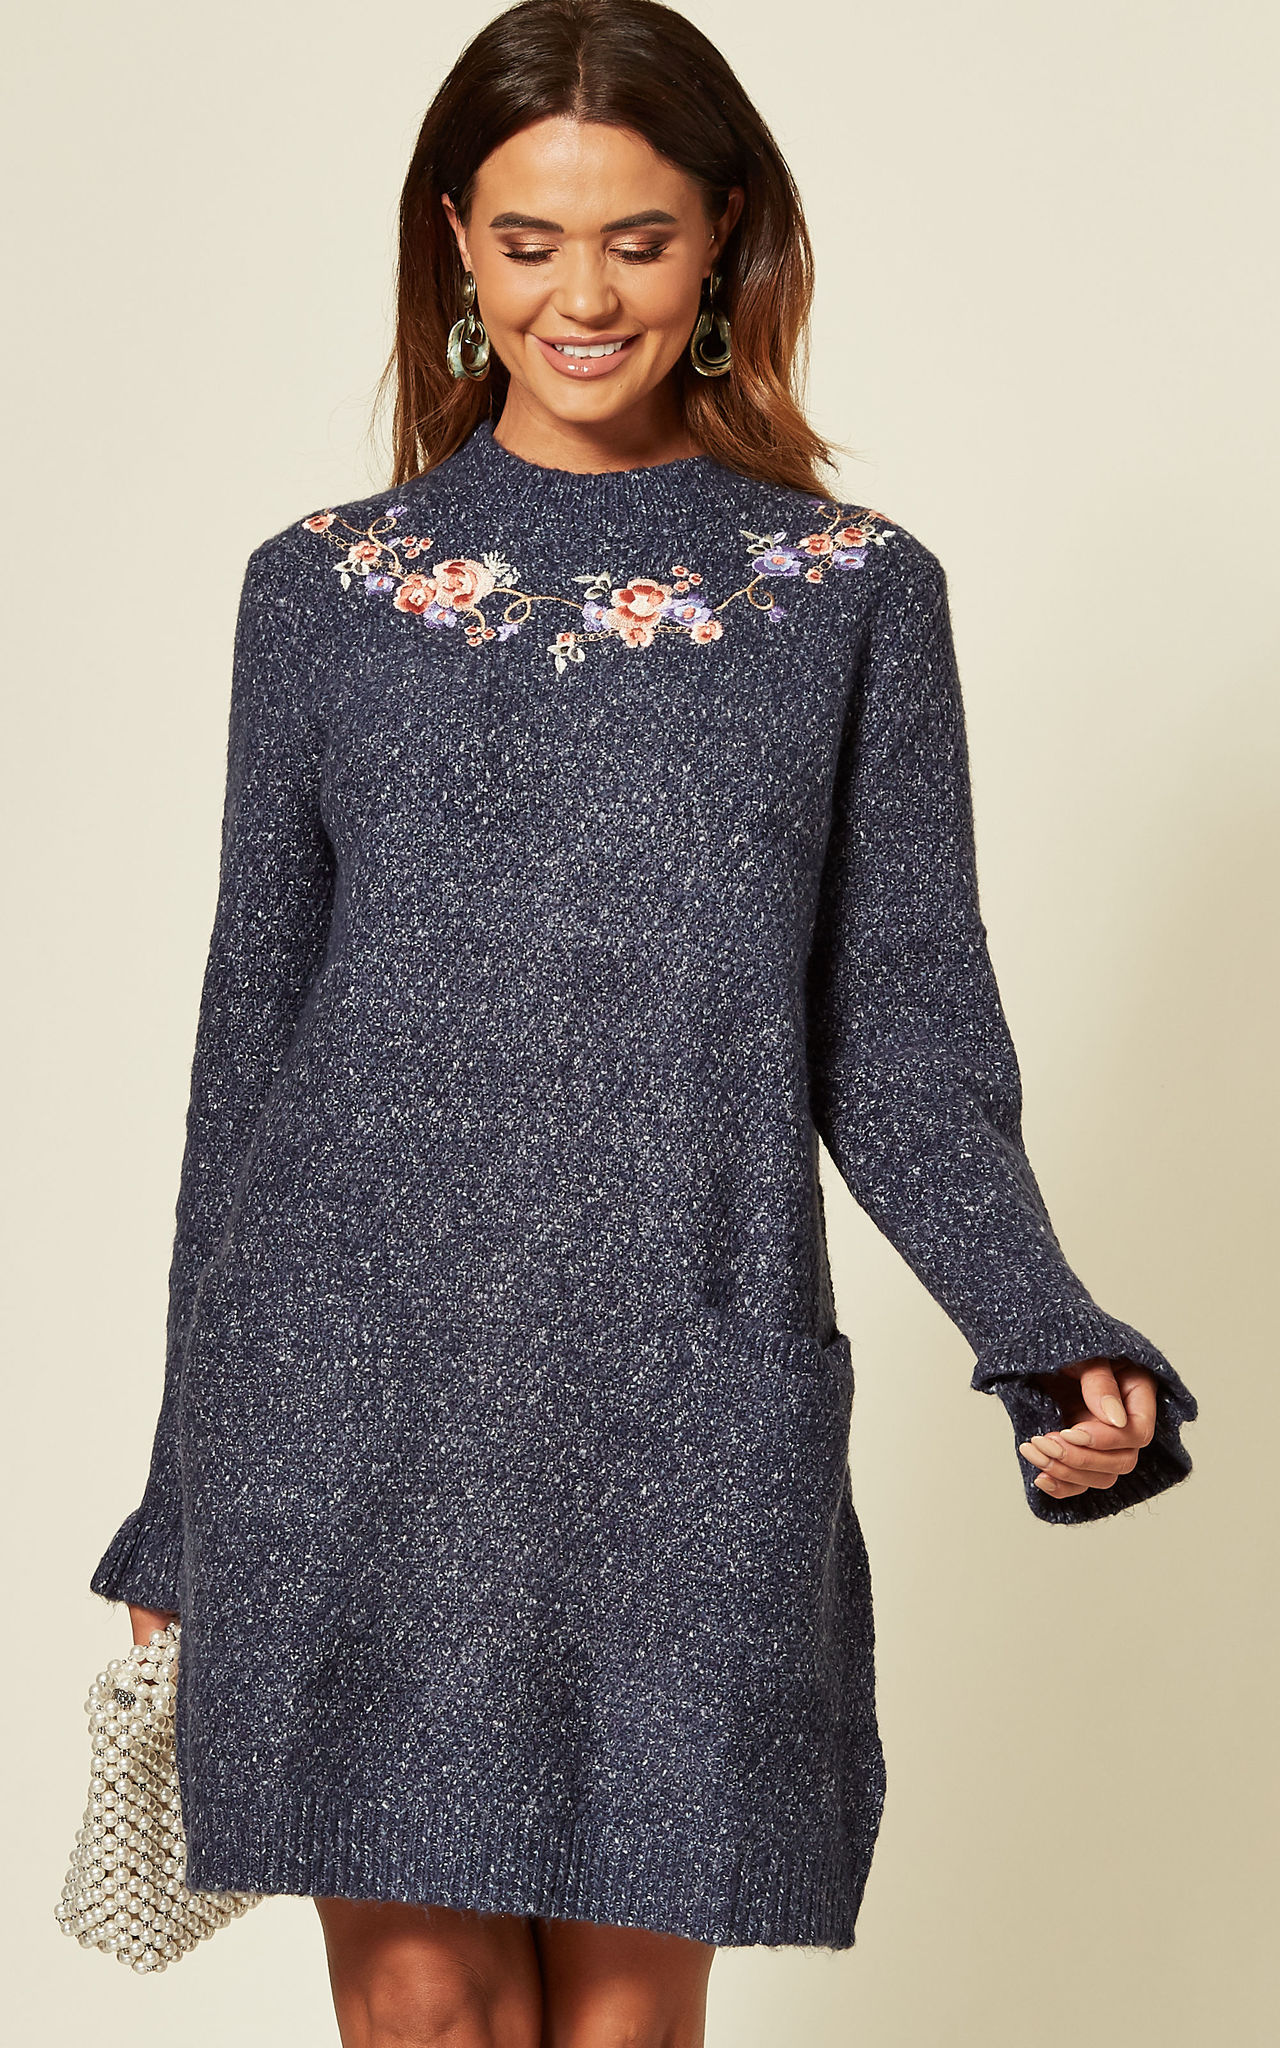 Model wears a knitted tunic dress in light blue with floral embroidery